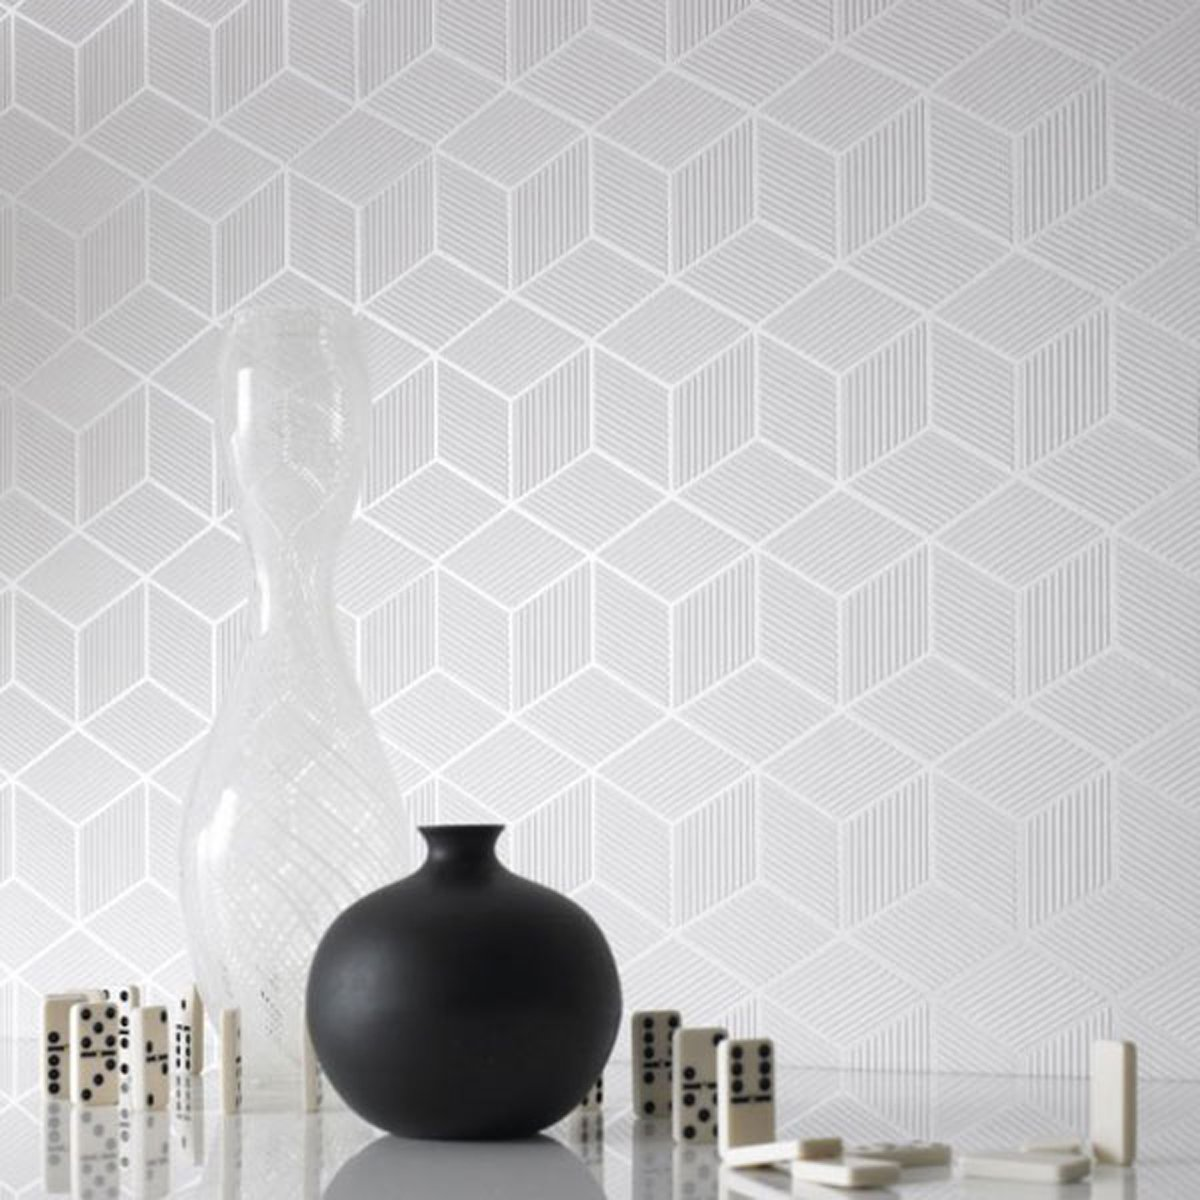 Exclusive Inspiring Black and White Wallpaper Designs with 3D Layouts 1200x1200